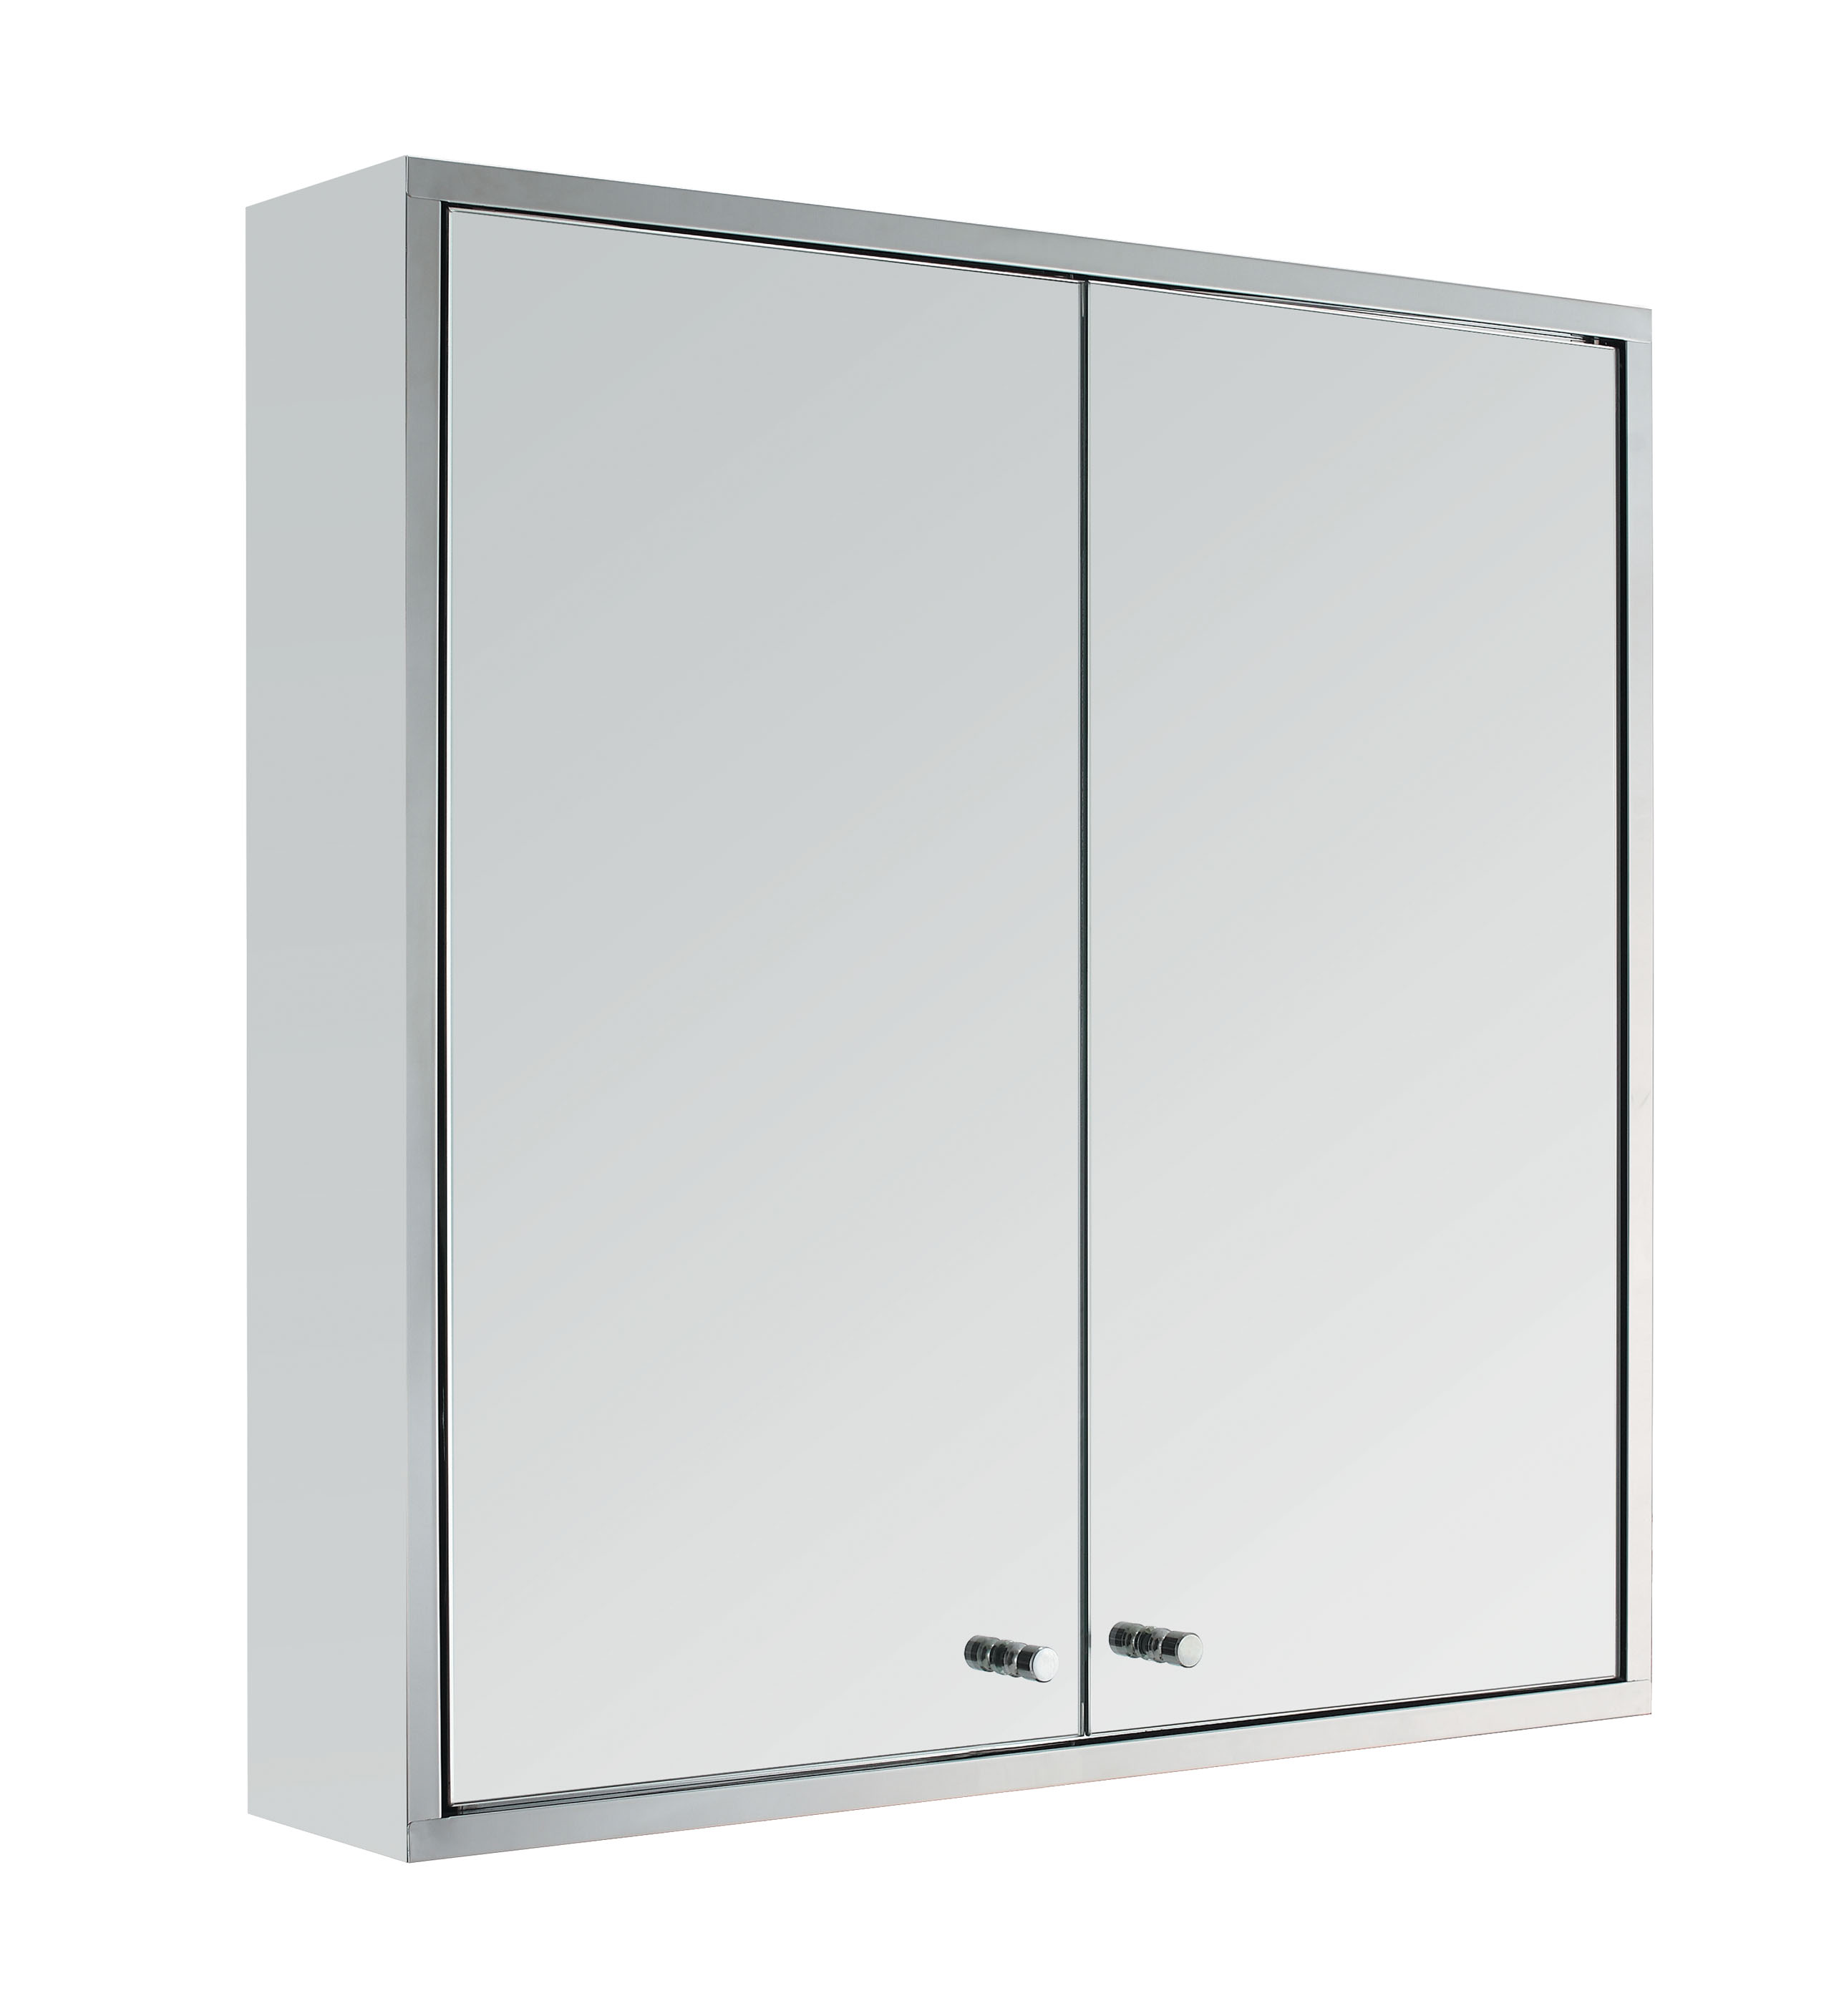 Mirrored Bathroom Cabinets Uk Bathroom Mirror Wall Cabinet Ebay